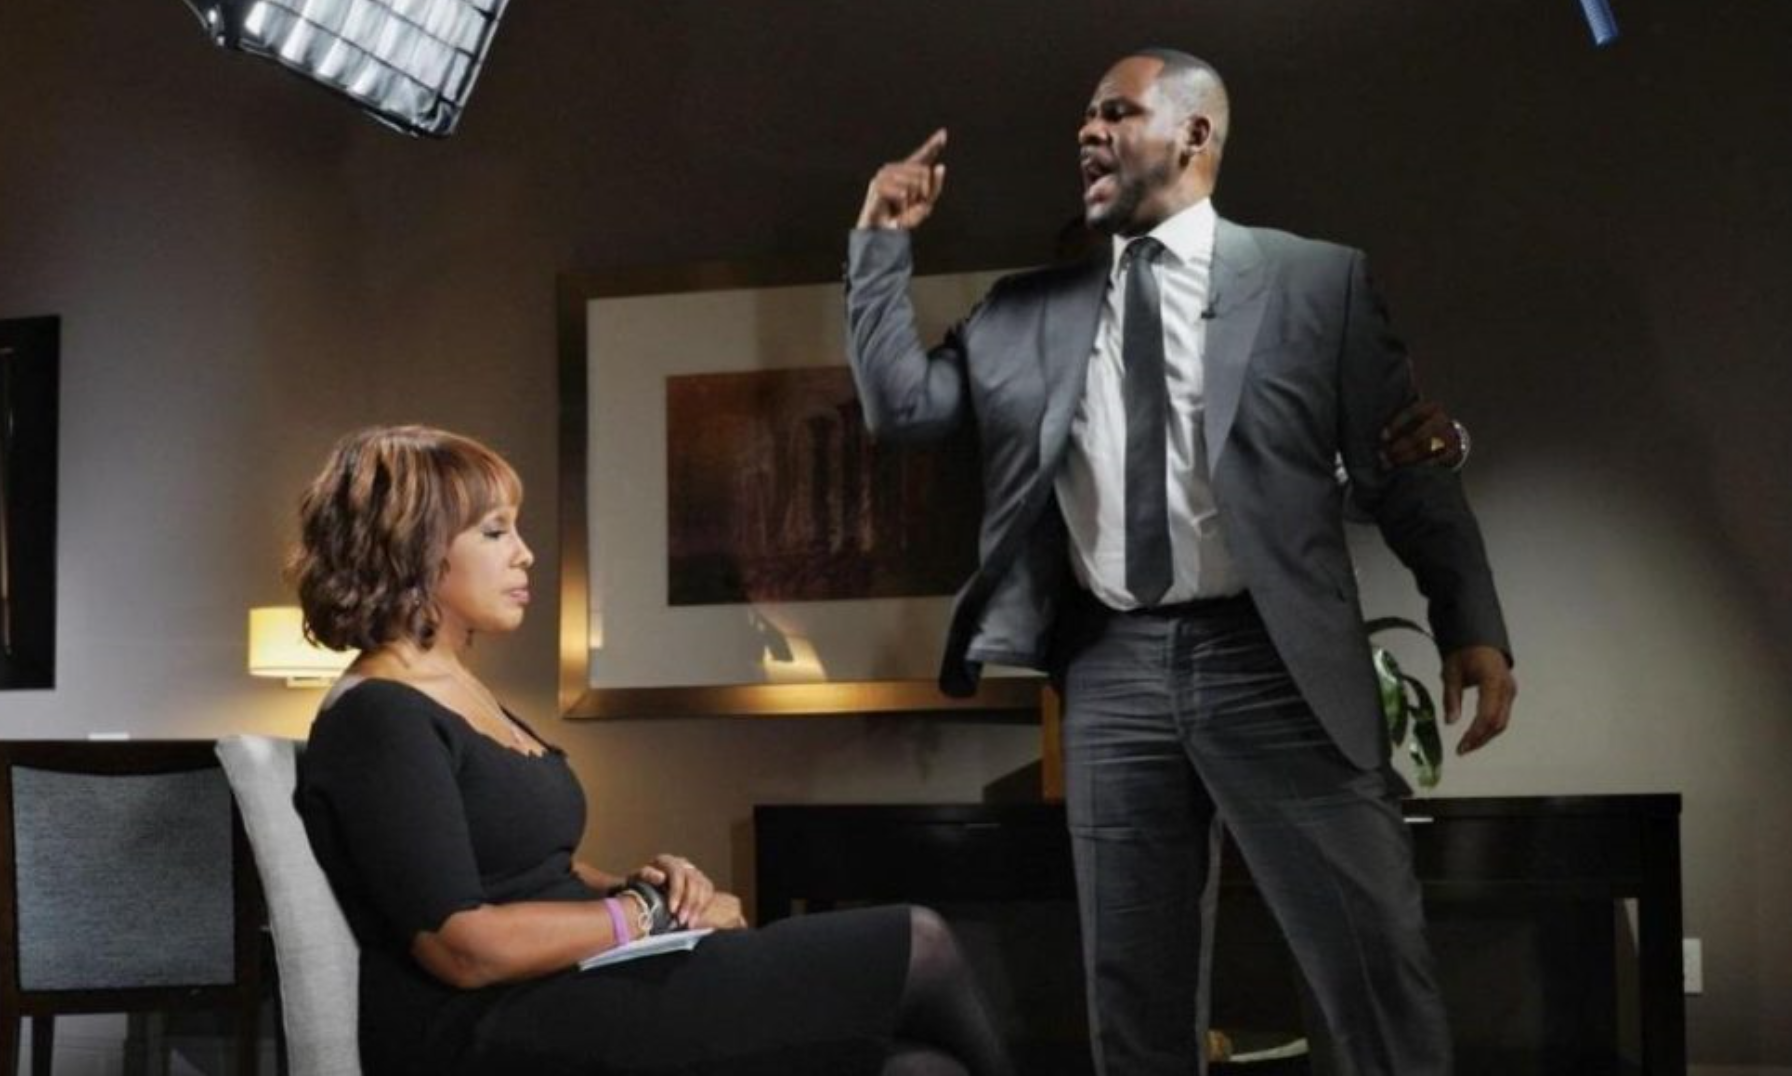 Gayle King praised for keeping composure in the explosive R Kelly interview